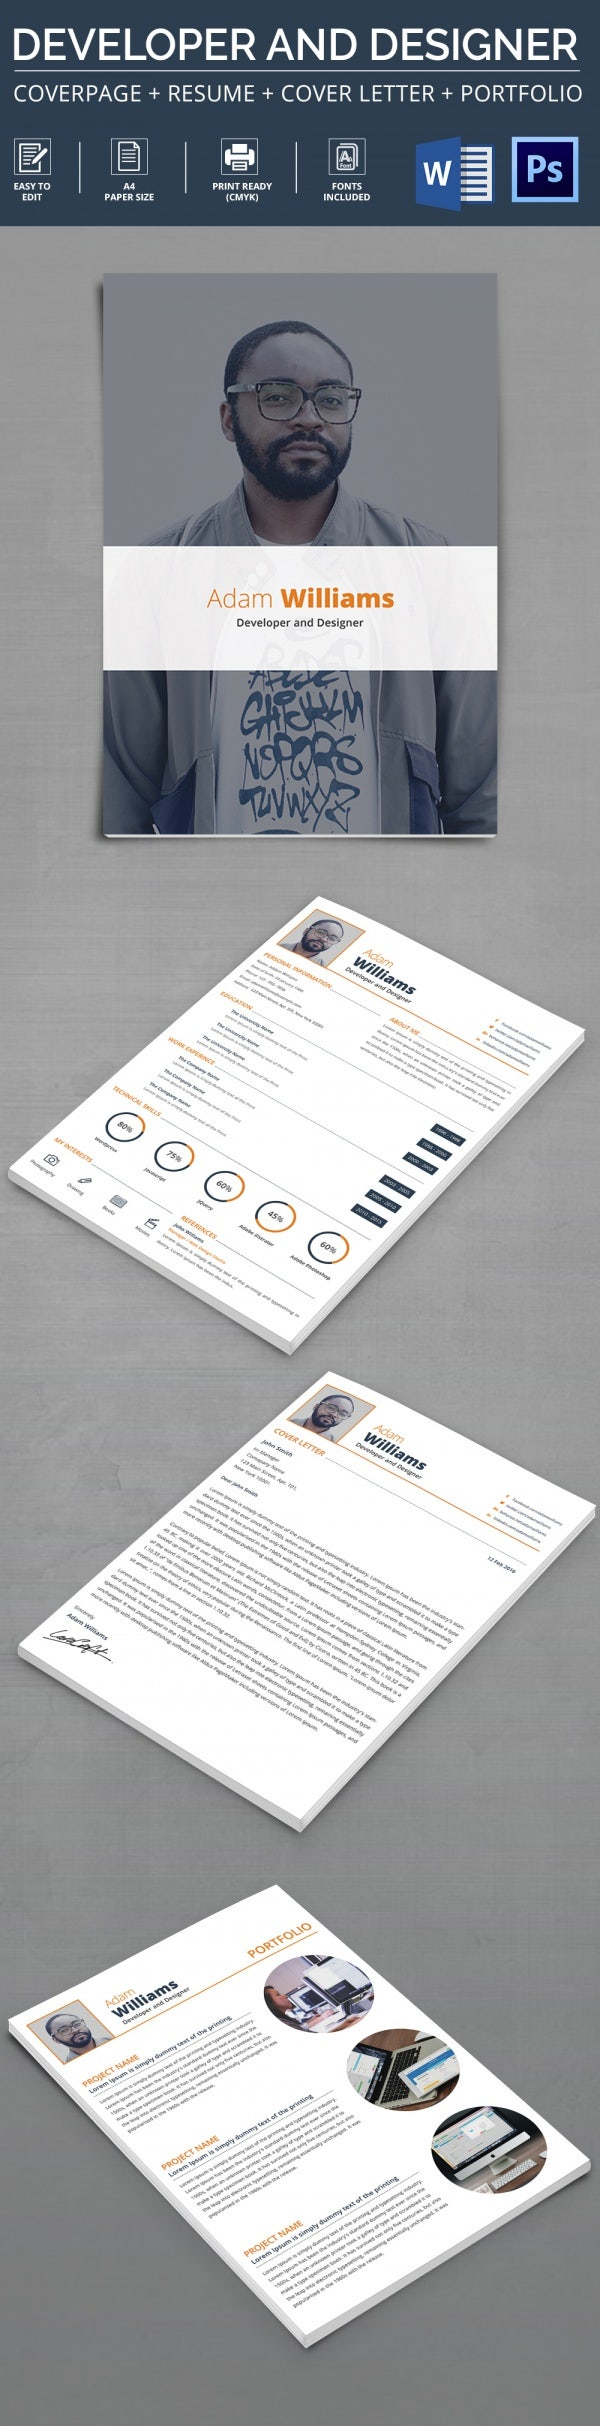 Developer U0026 Designer Resume + Cover Letter + Portfolio Template